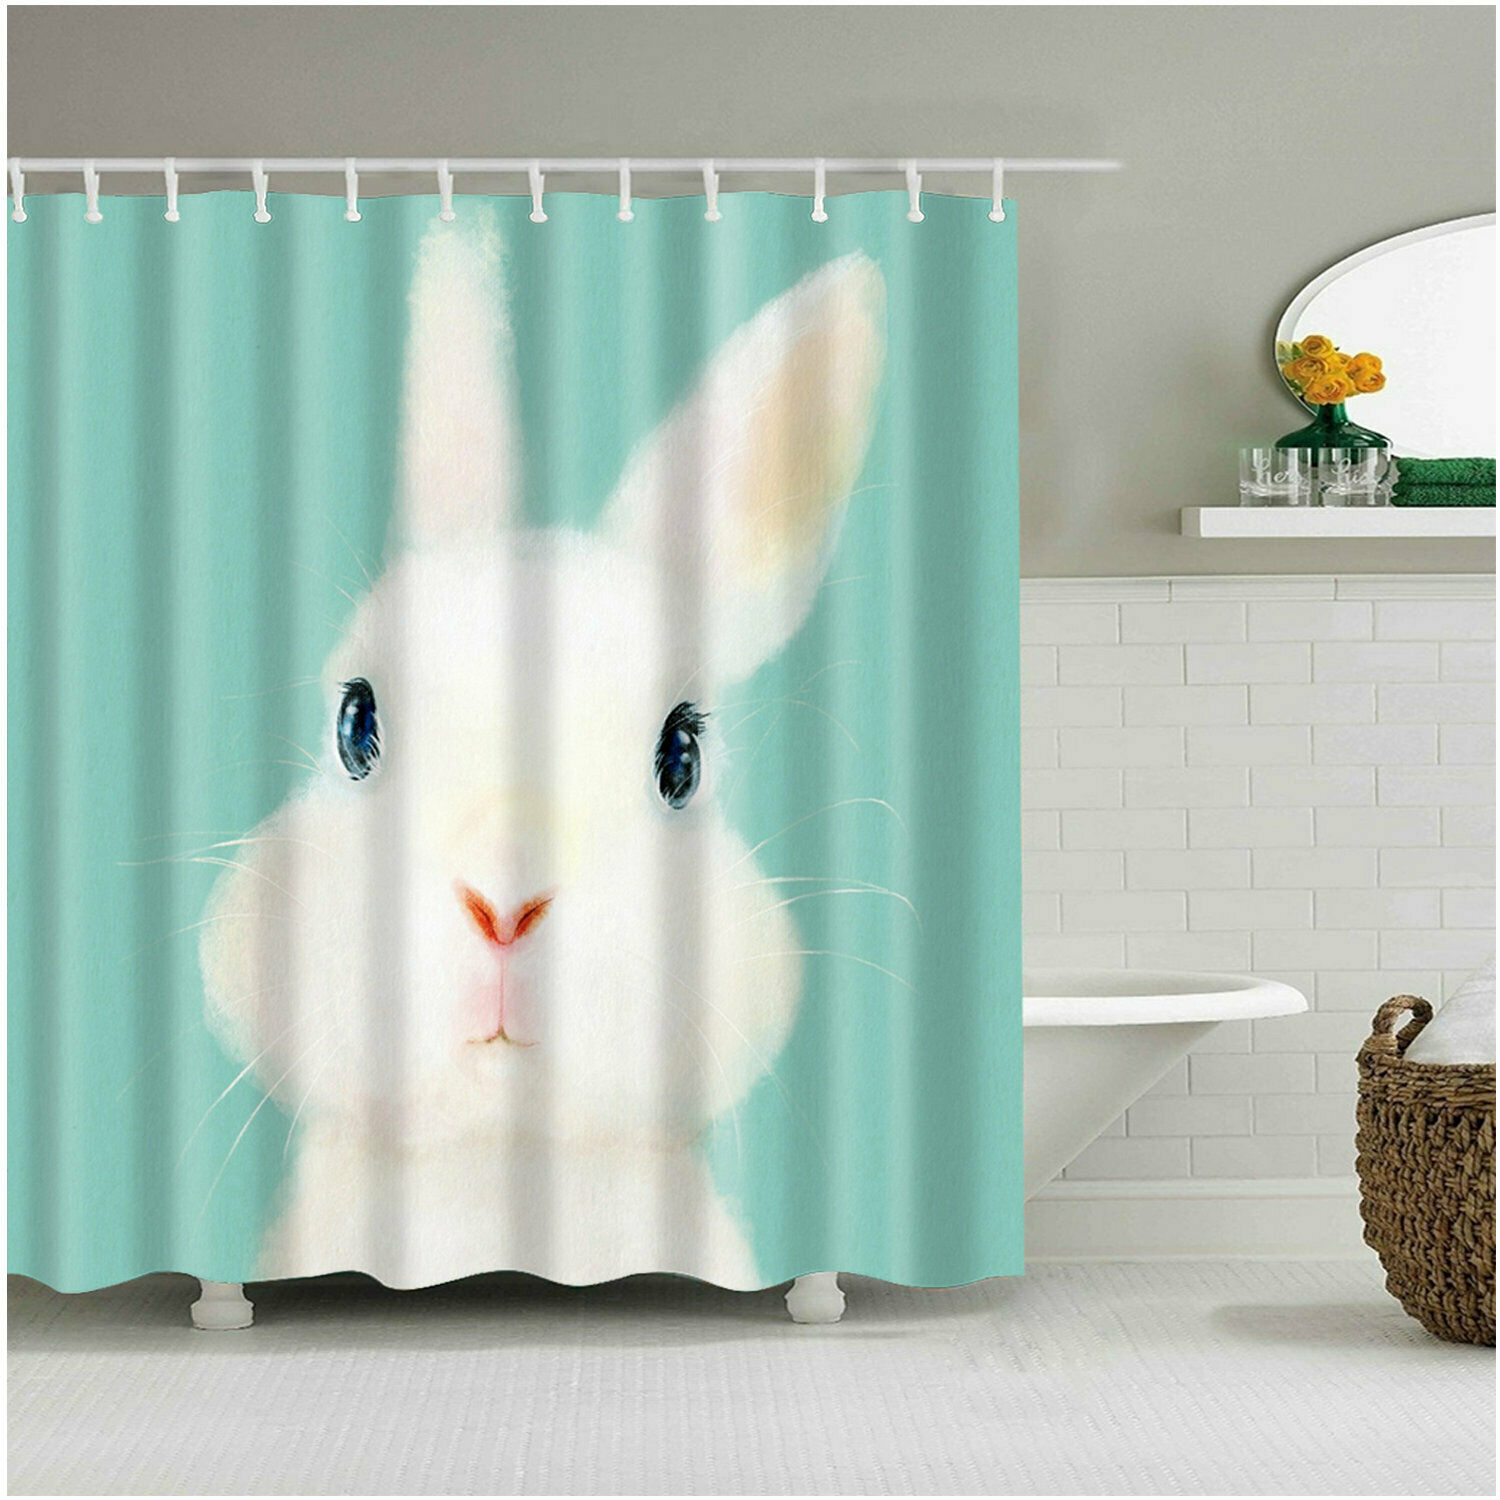 Details About Shower Curtain Art Bathroom Decor White Rabbits Waterproof Curtains 12 Hooks